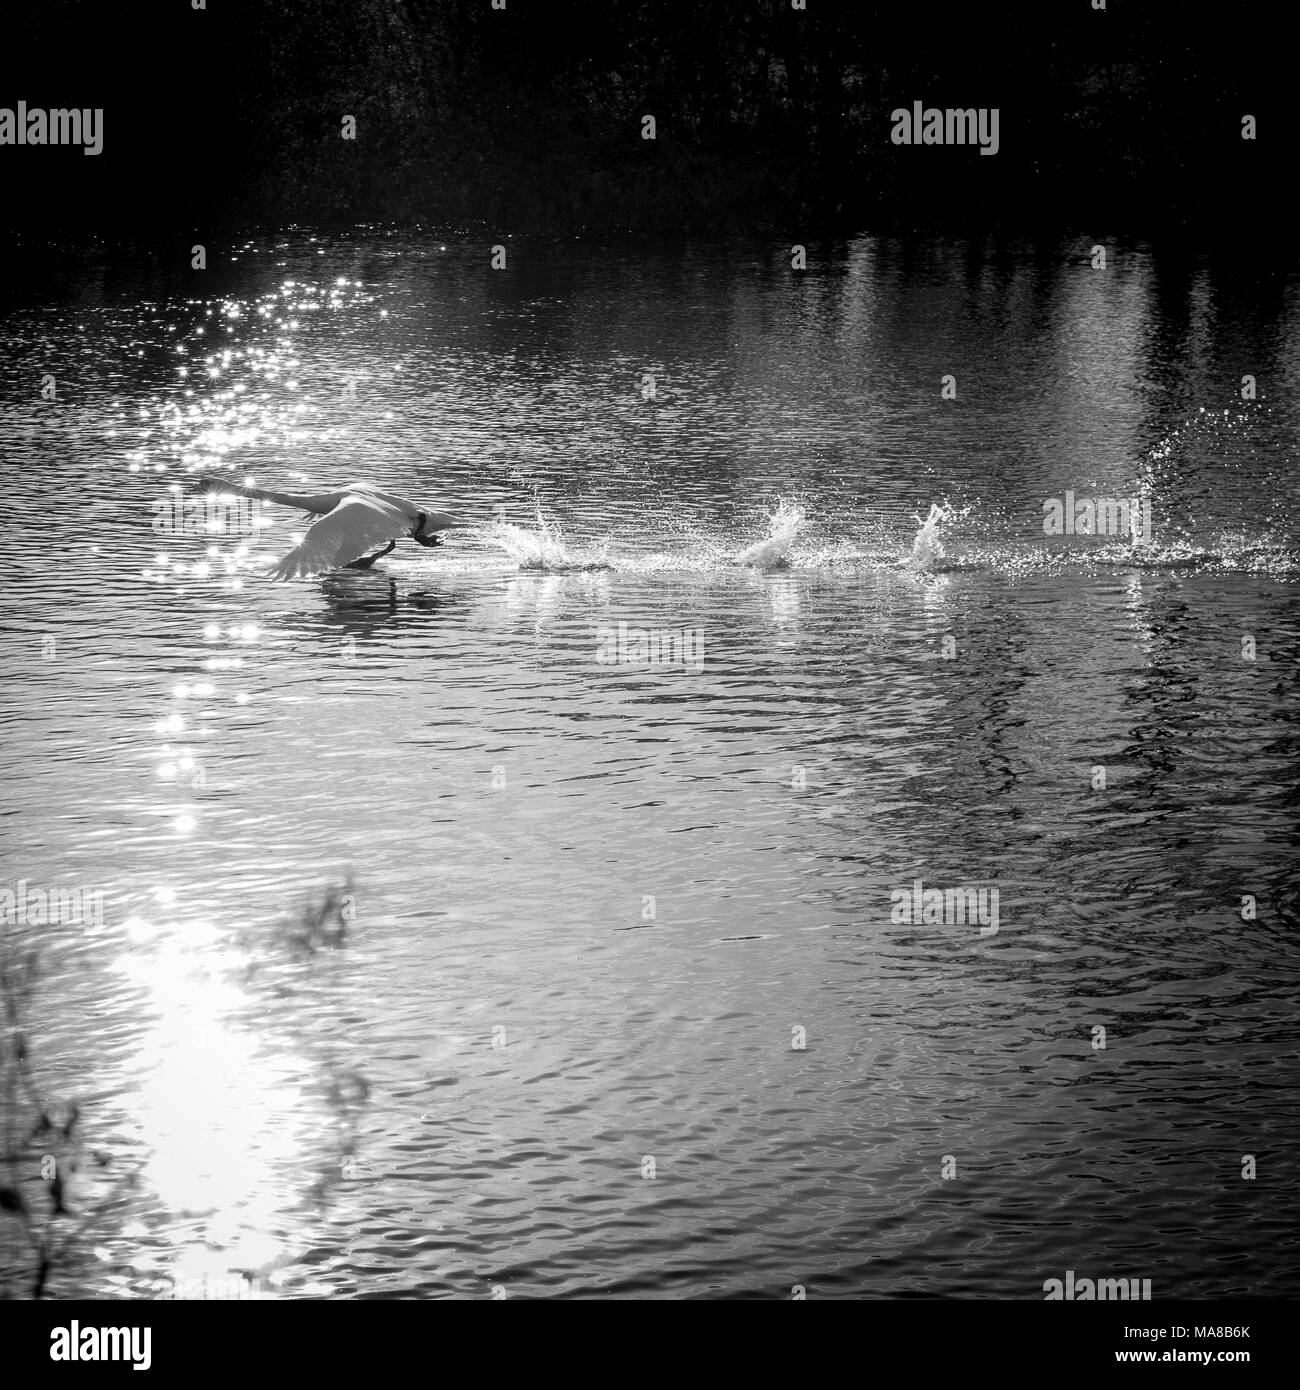 Ethereal style black and white picture of swan running on water - Stock Image